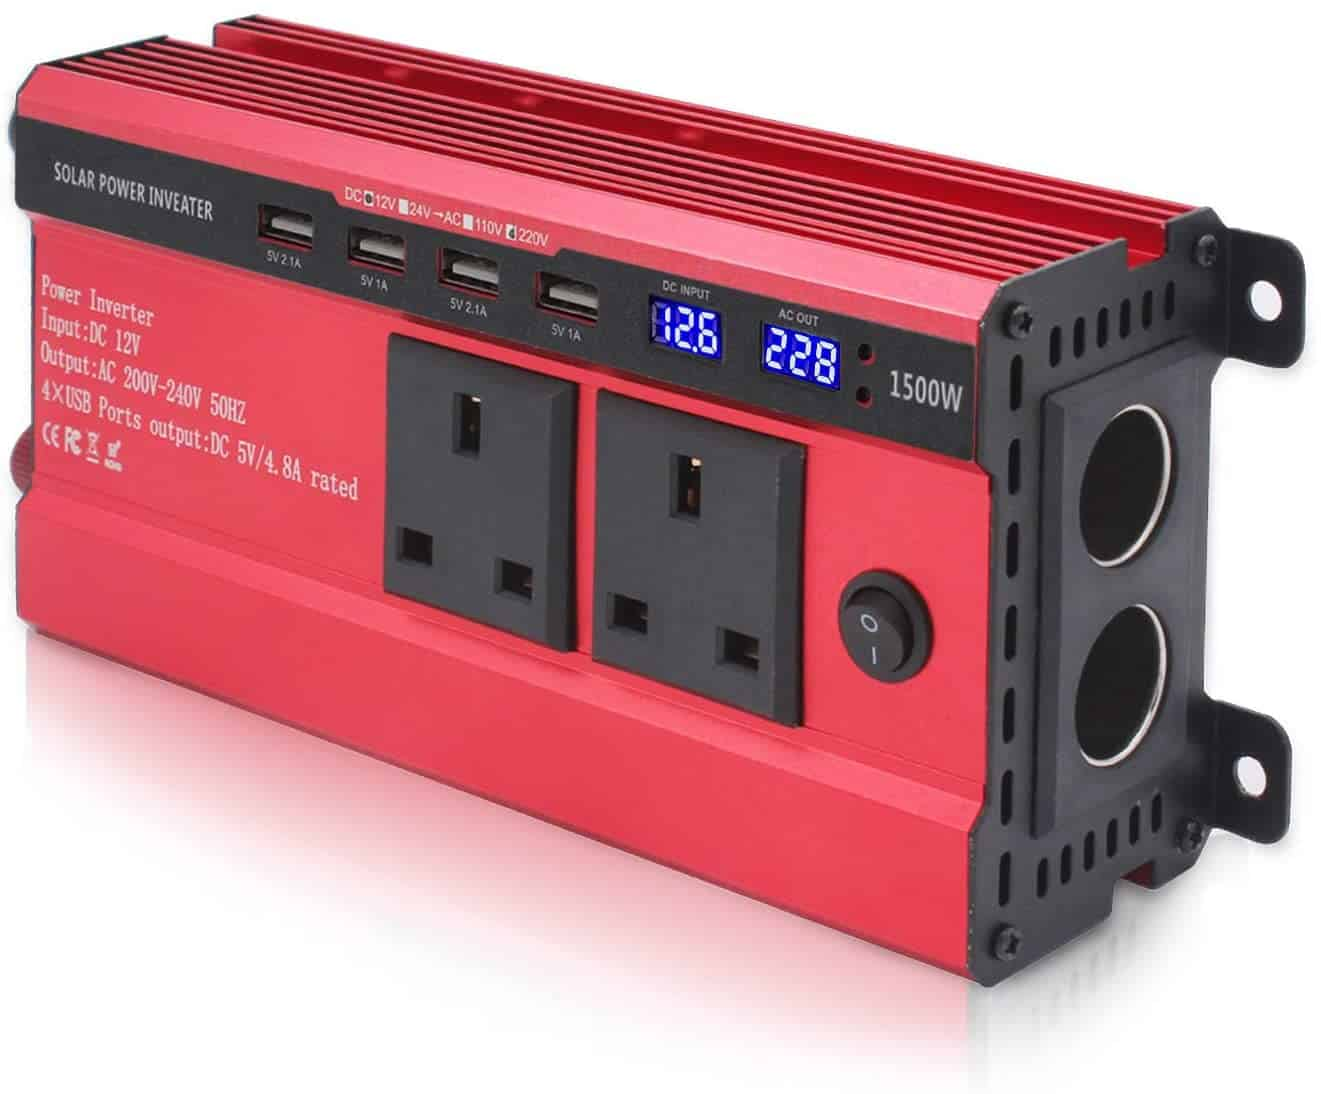 Solar inverter convertes dc to ac current in solar systems